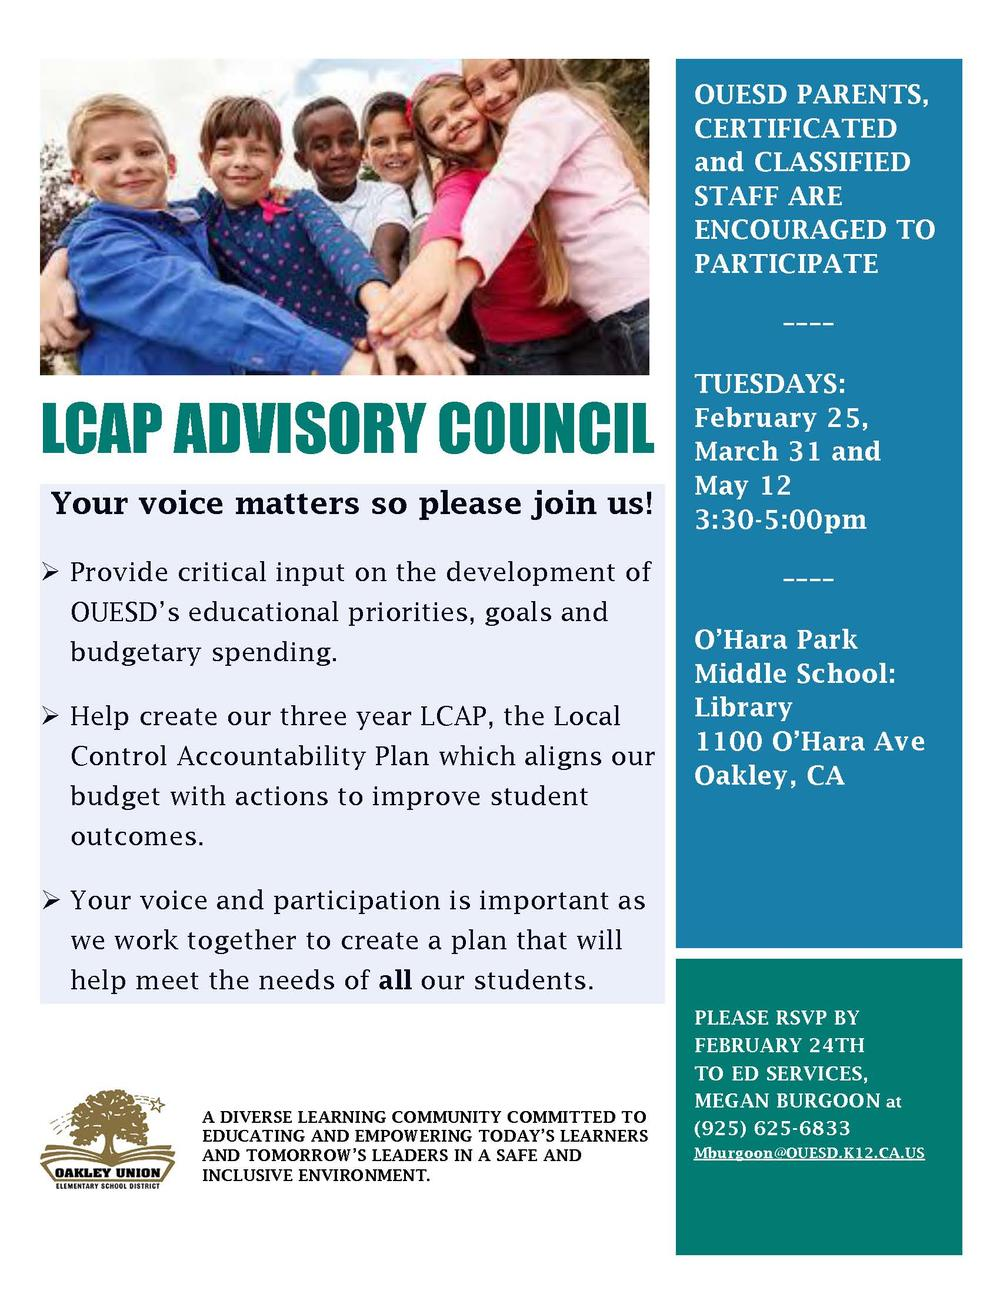 LCAP Advisory Council Flyer